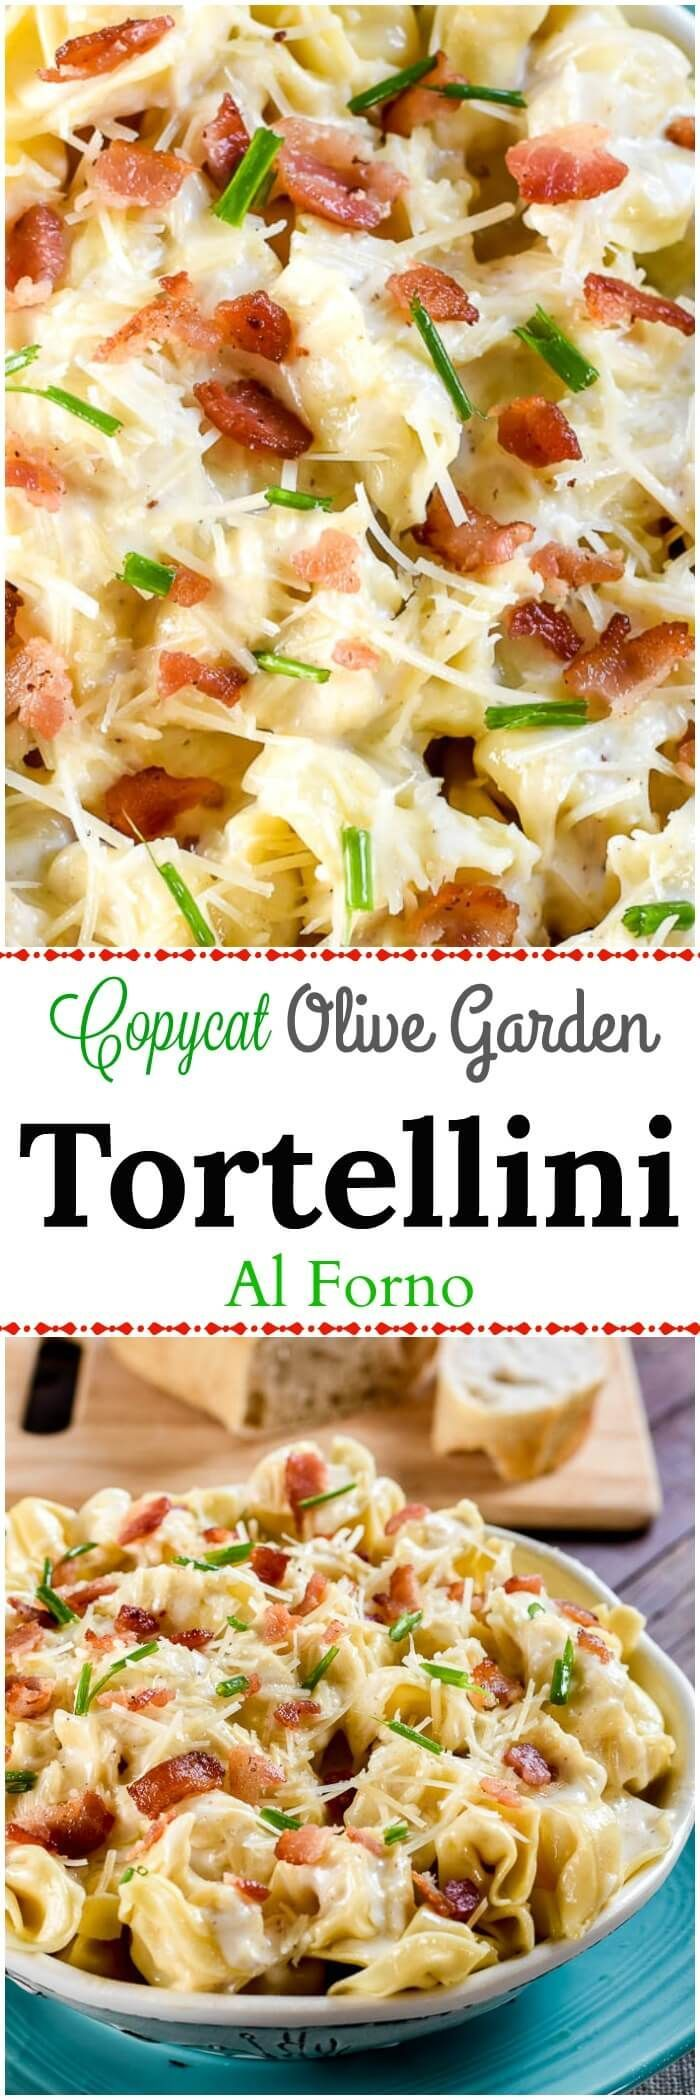 This Tortellini Al Forno, a copycat Olive Garden recipe, has pillowy cheese filled tortellini in a rich parmesan cream sauce with crumbled bacon and chives.